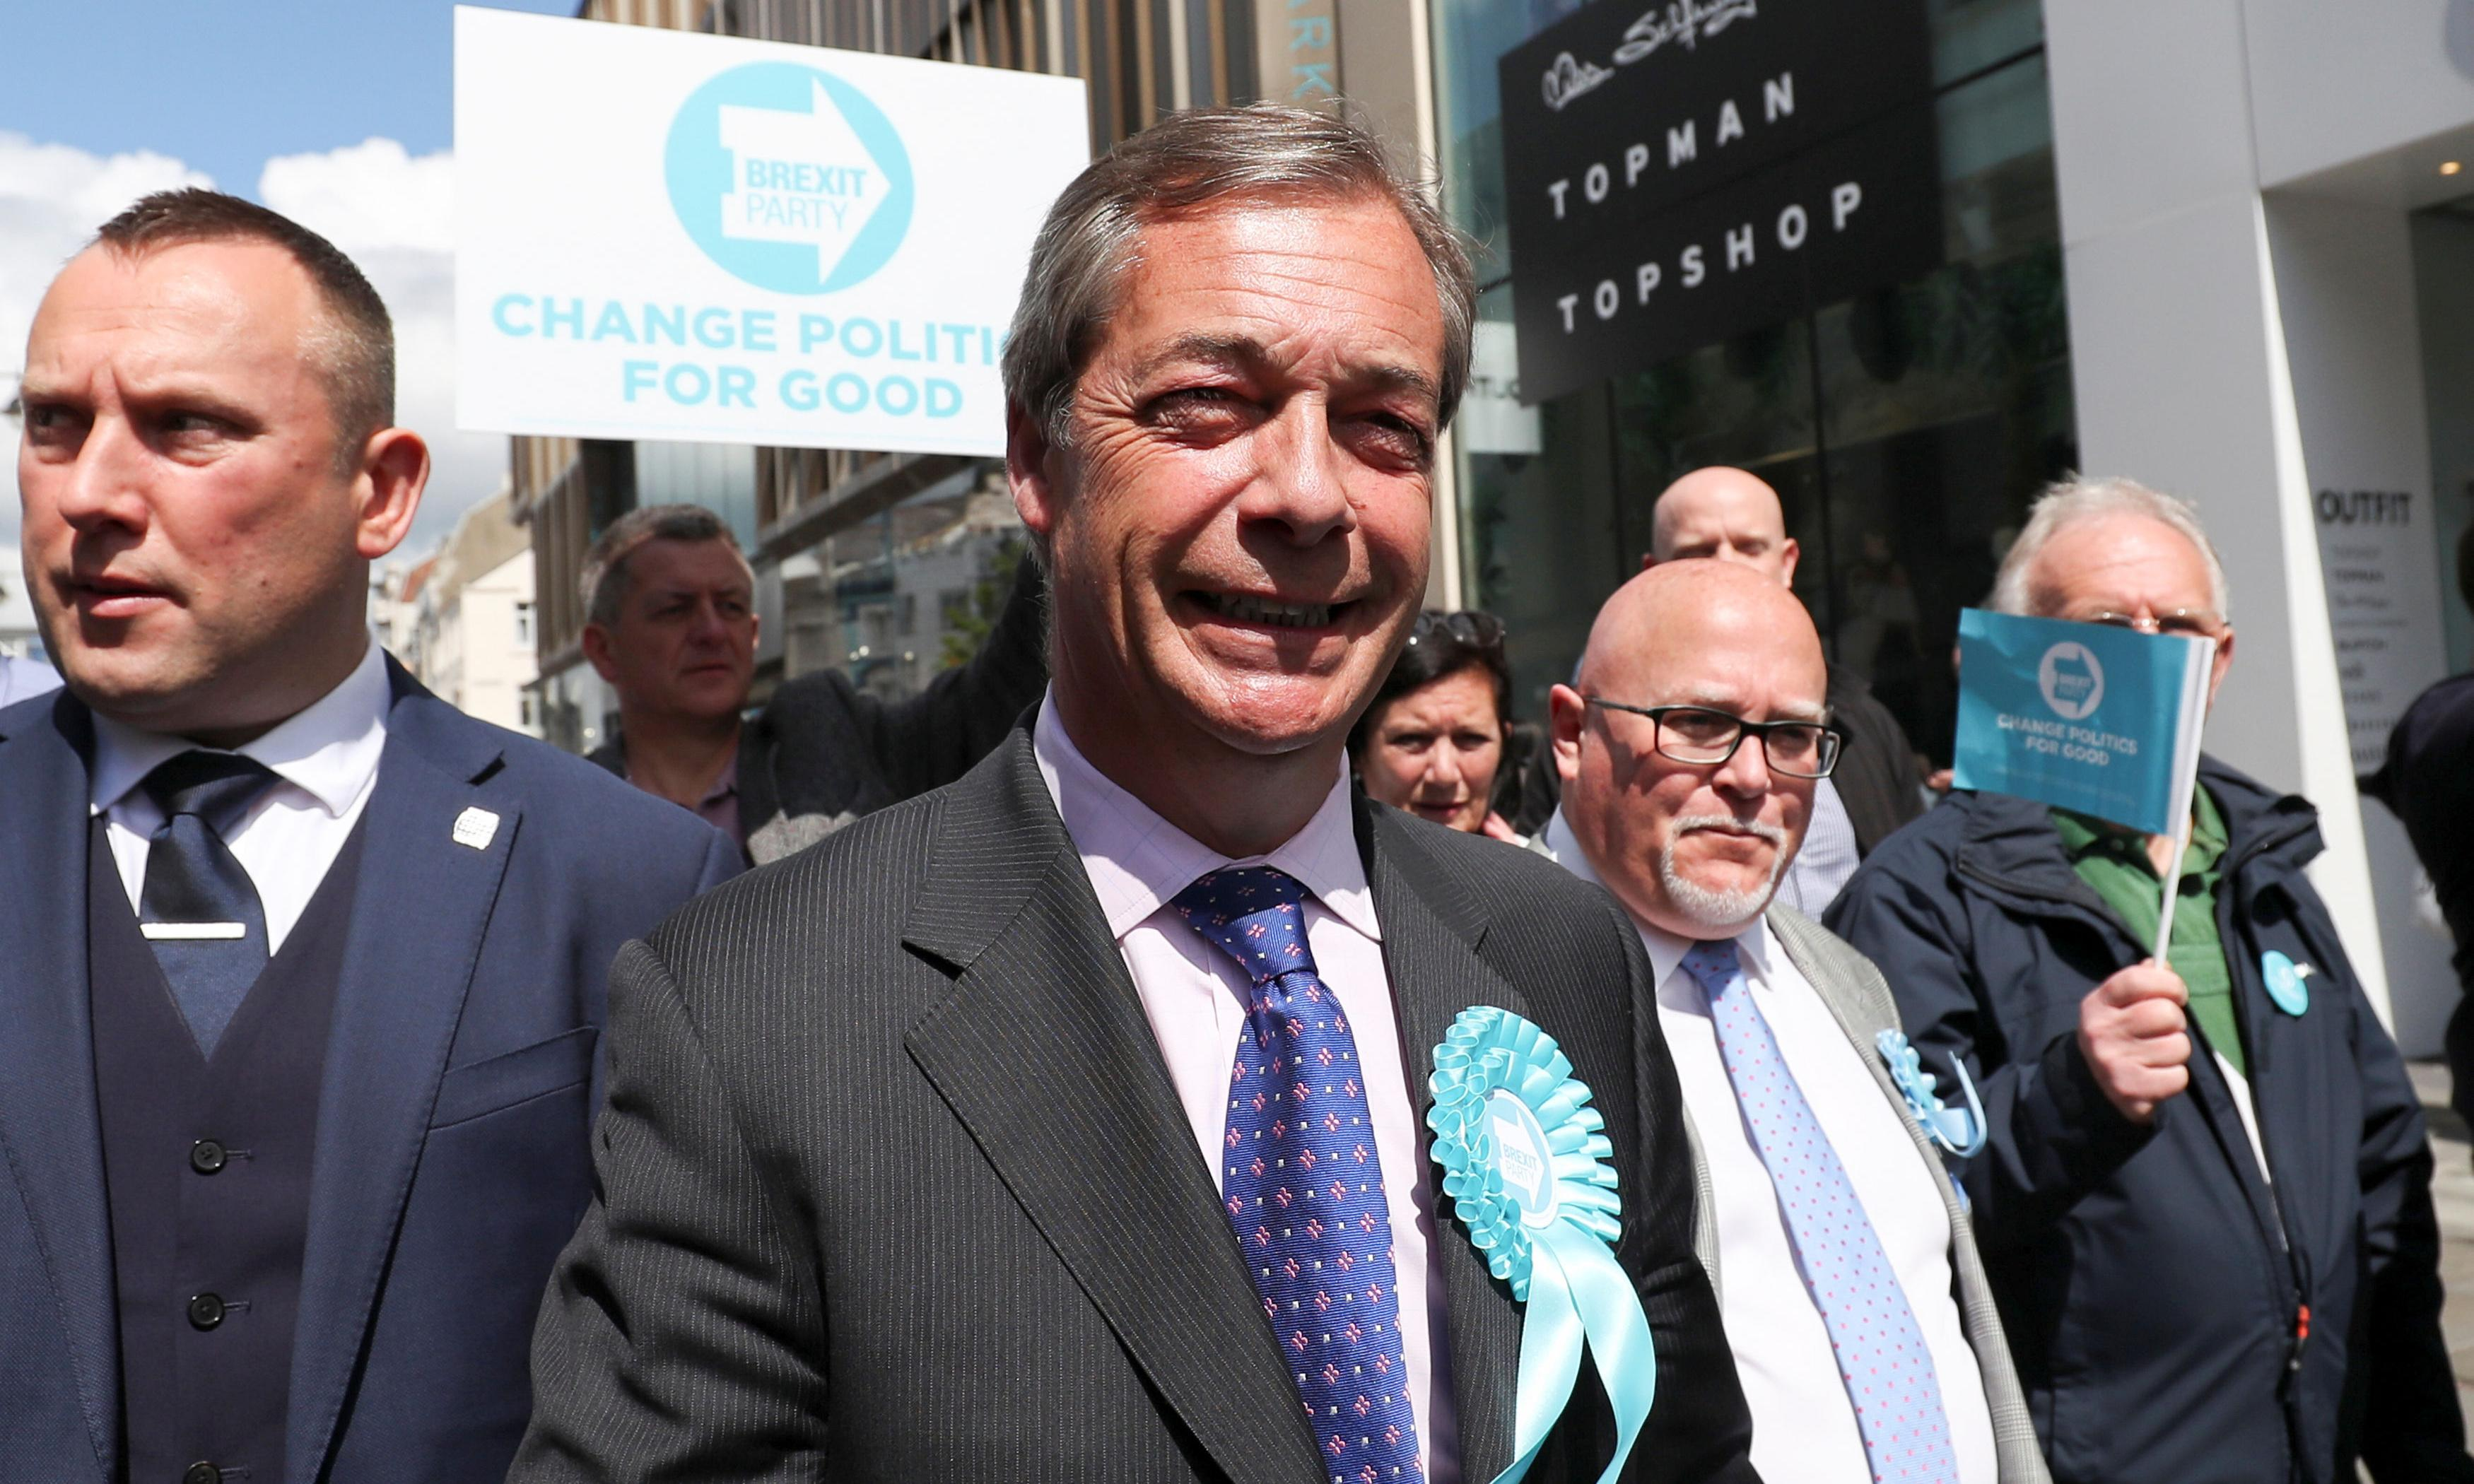 Electoral Commission to visit Brexit party offices over funding concerns